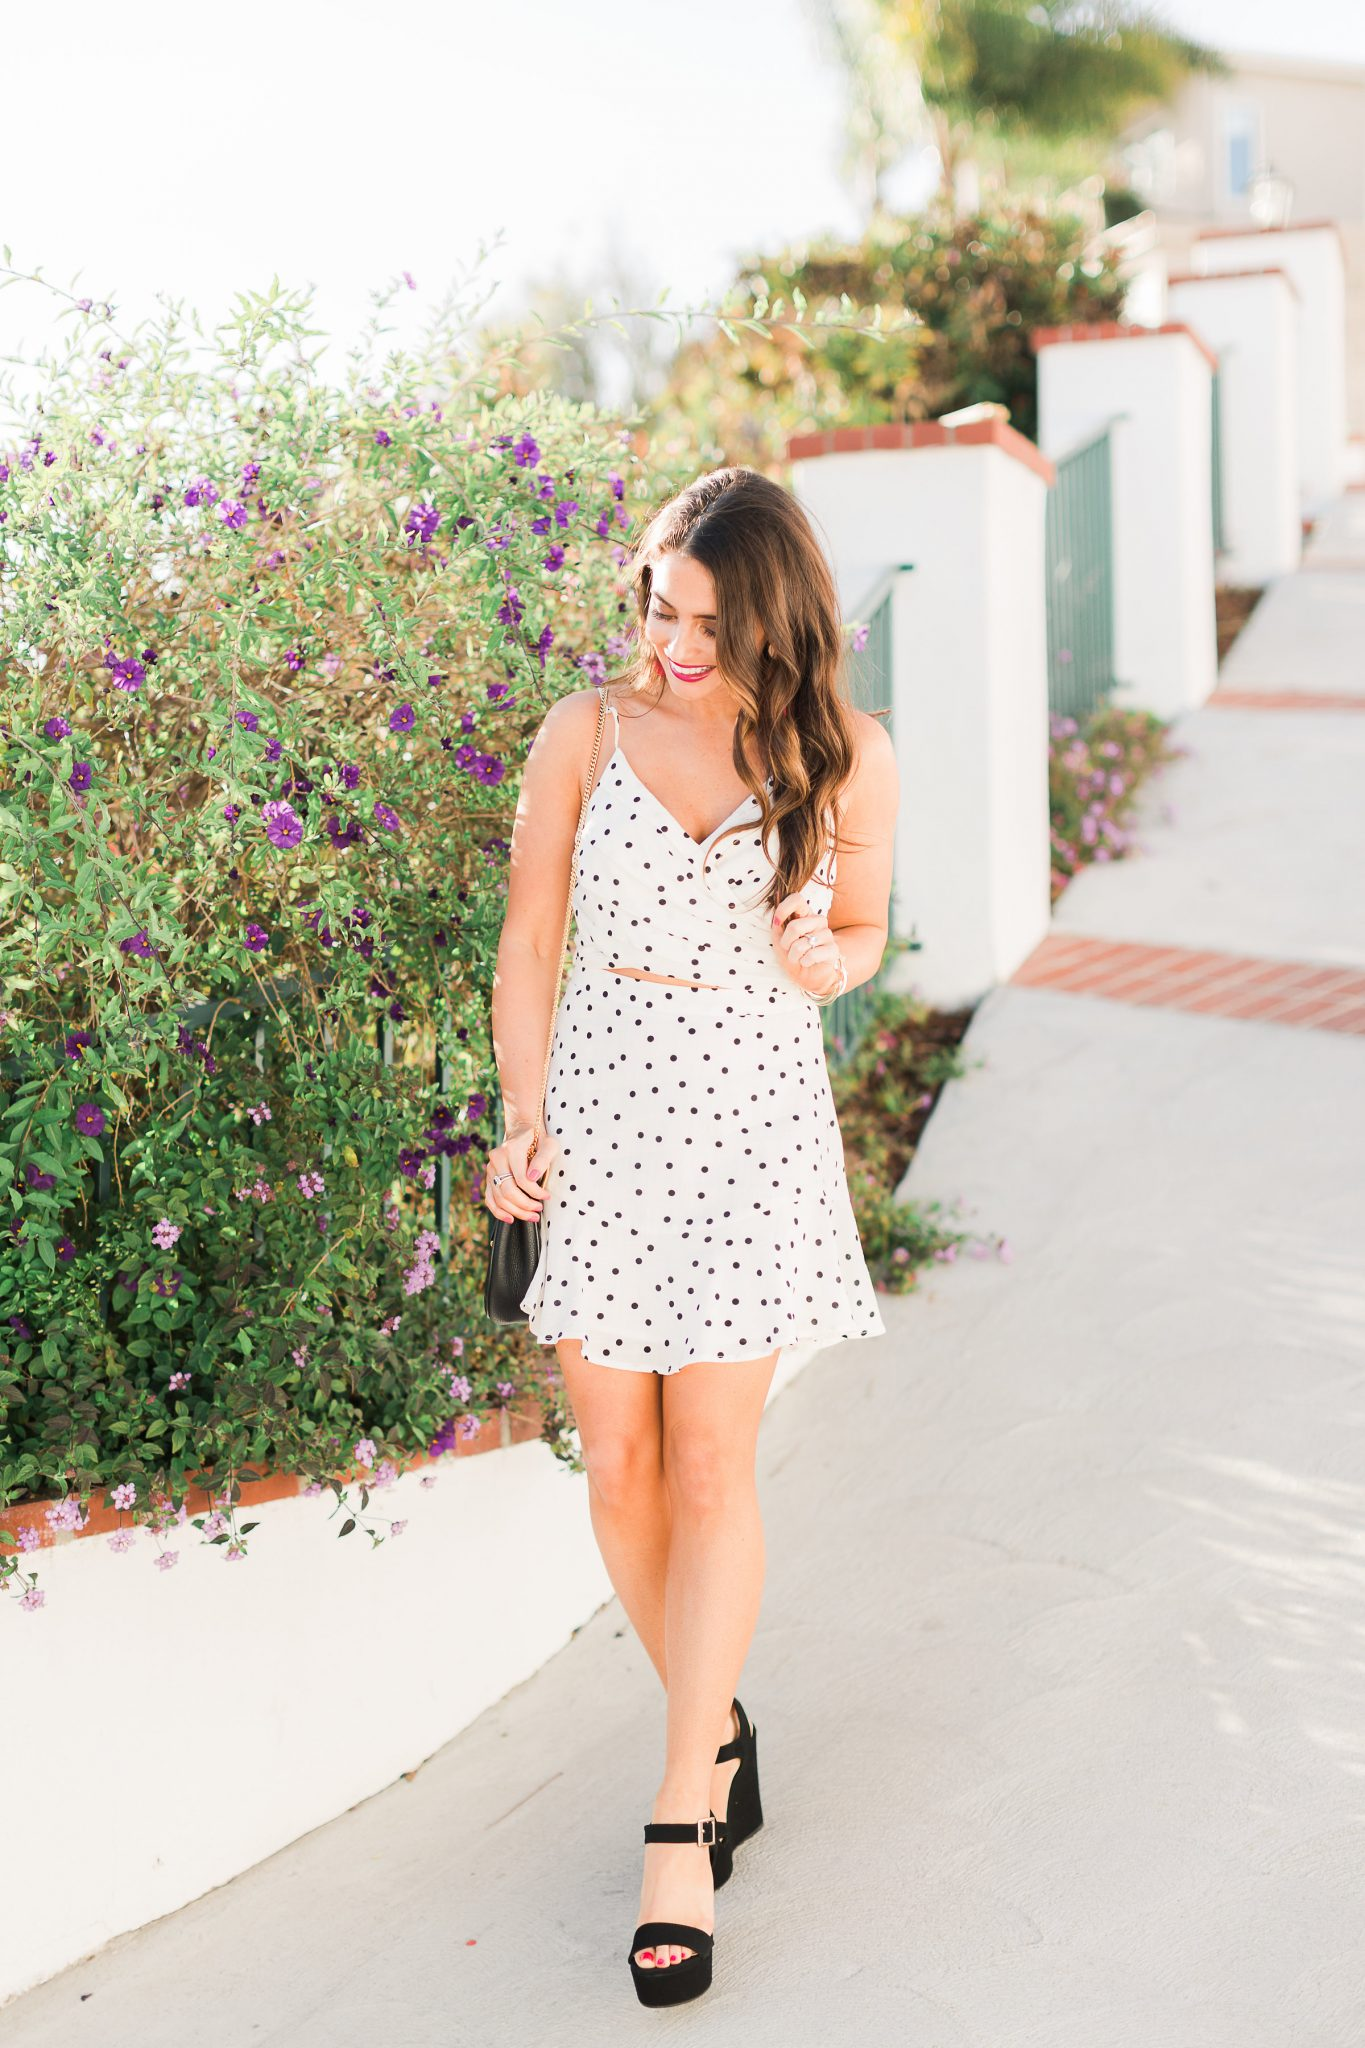 black and white polka dot skirt - Polka Dot Clothing styled by popular Orange County fashion blogger, Maxie Elle